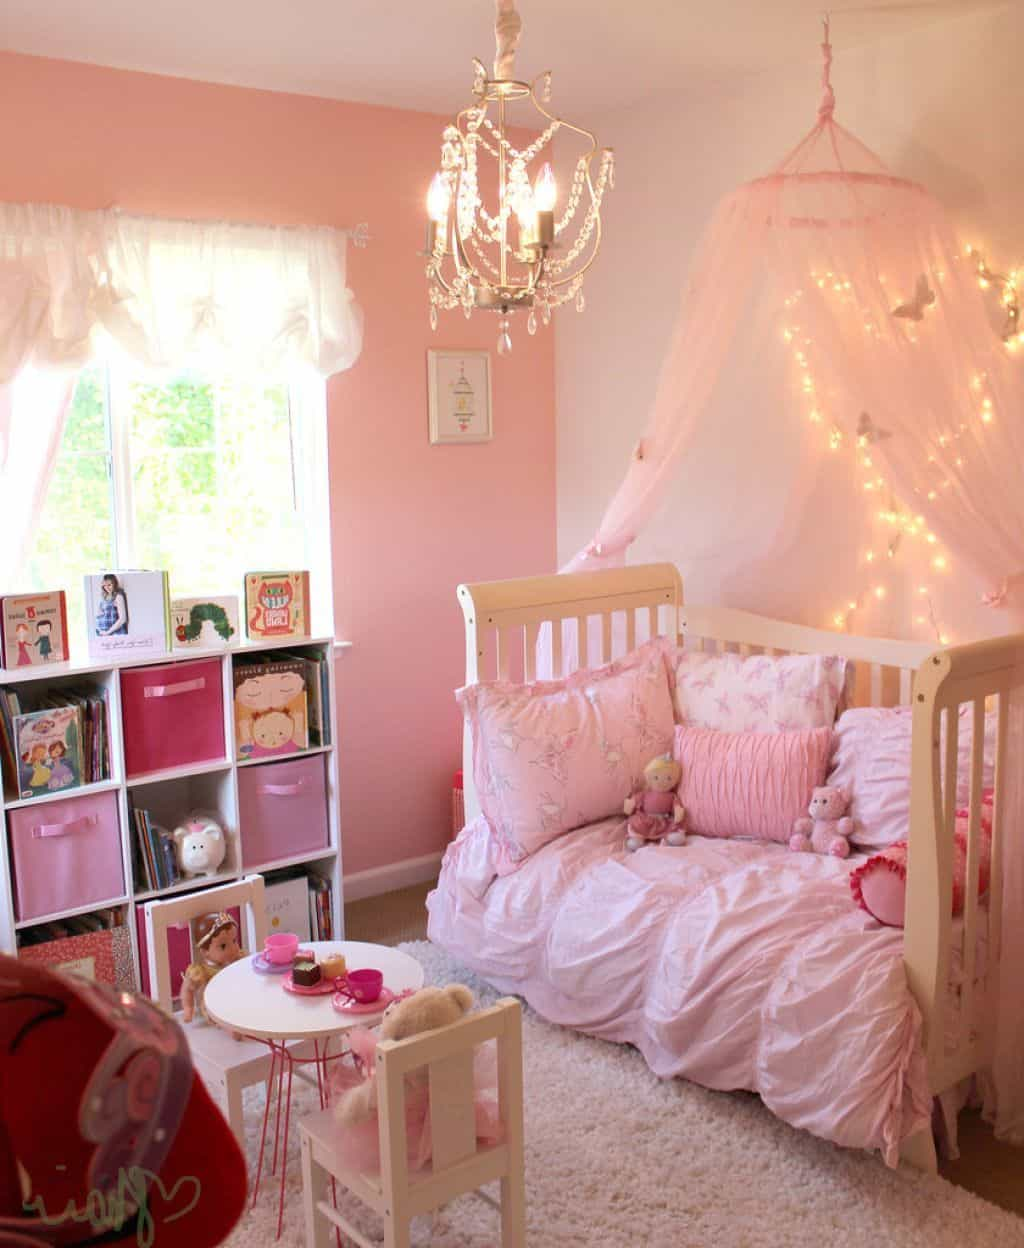 Bedroom Ideas For Girls Bed Ideas And Kids Bedroom: 32 Cheery Designs For A Little Girl's Dream Bedroom